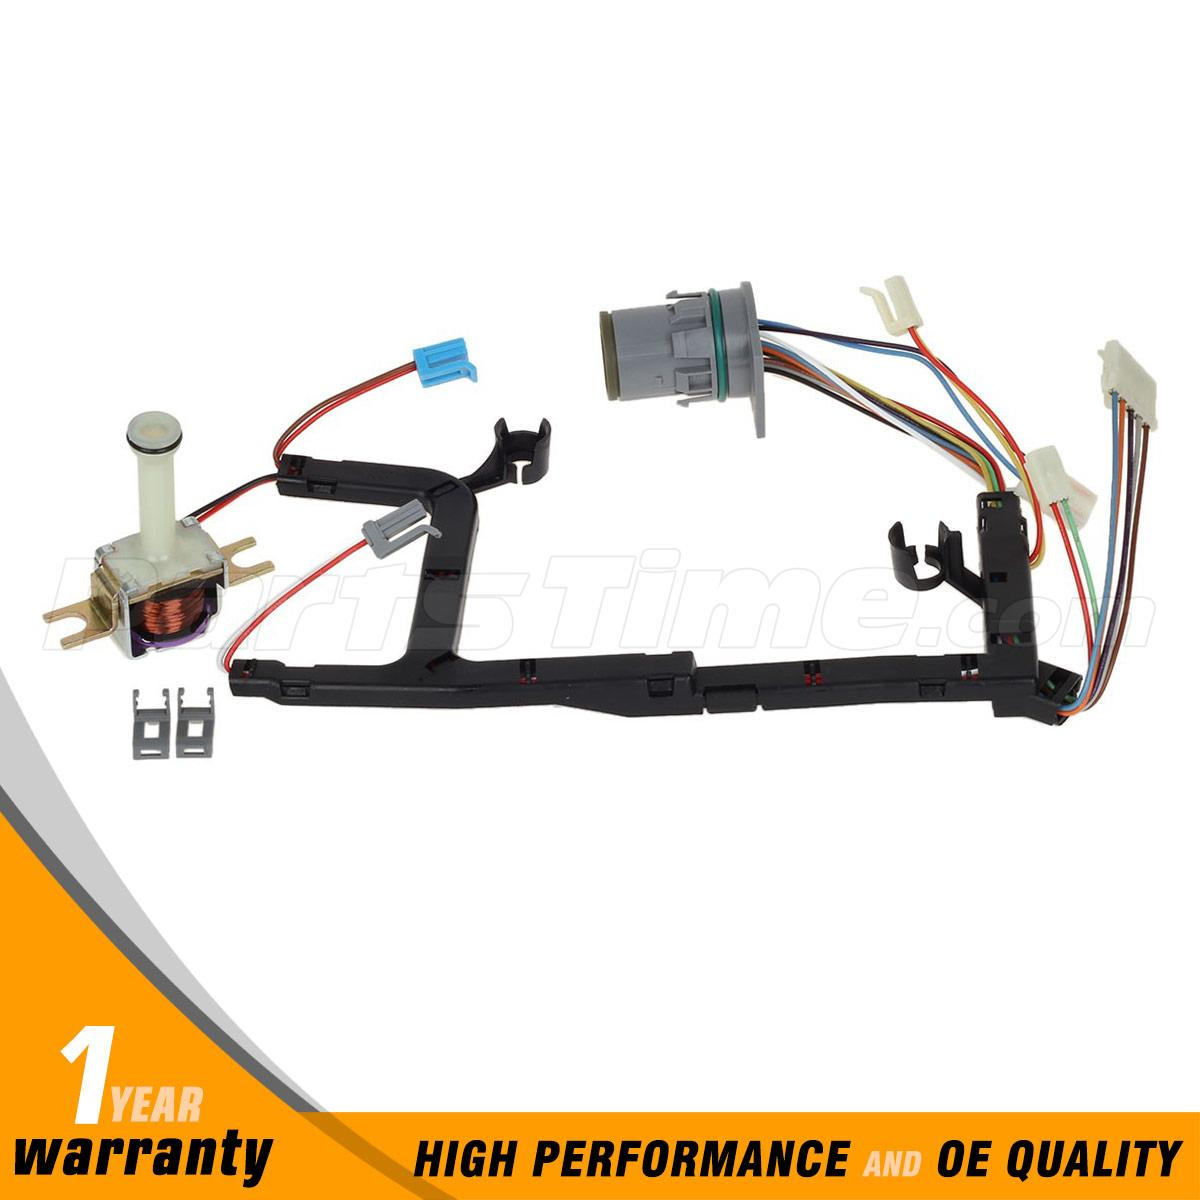 142072 7?p=ZGVhbGNsaWNr&s=t&rn=5457230 transmission 4l60e tcc look up solenoid with internal wire harness 4l60e internal wiring harness at couponss.co